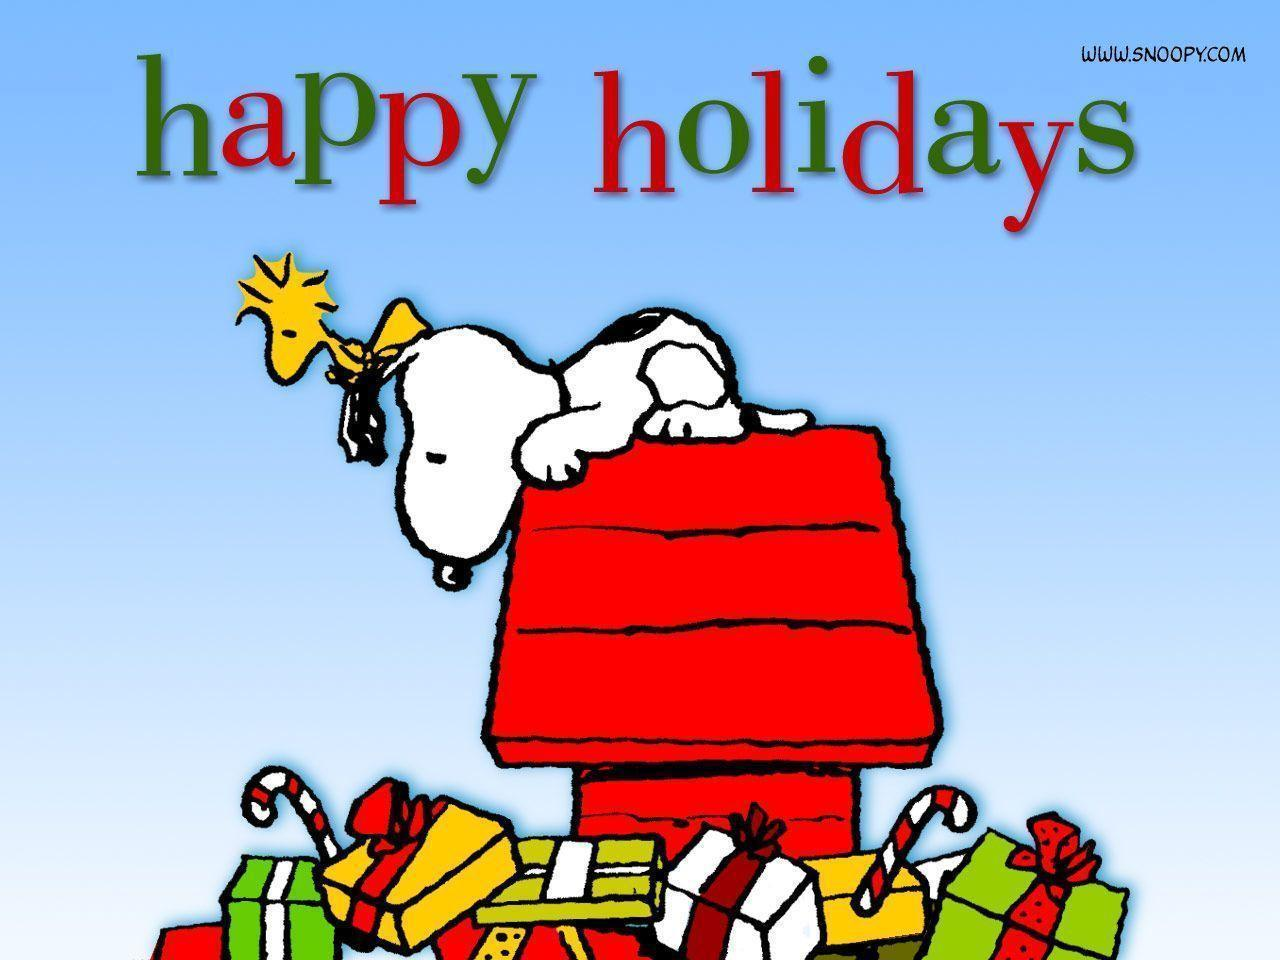 Snoopy Christmas Backgrounds - Wallpaper Cave